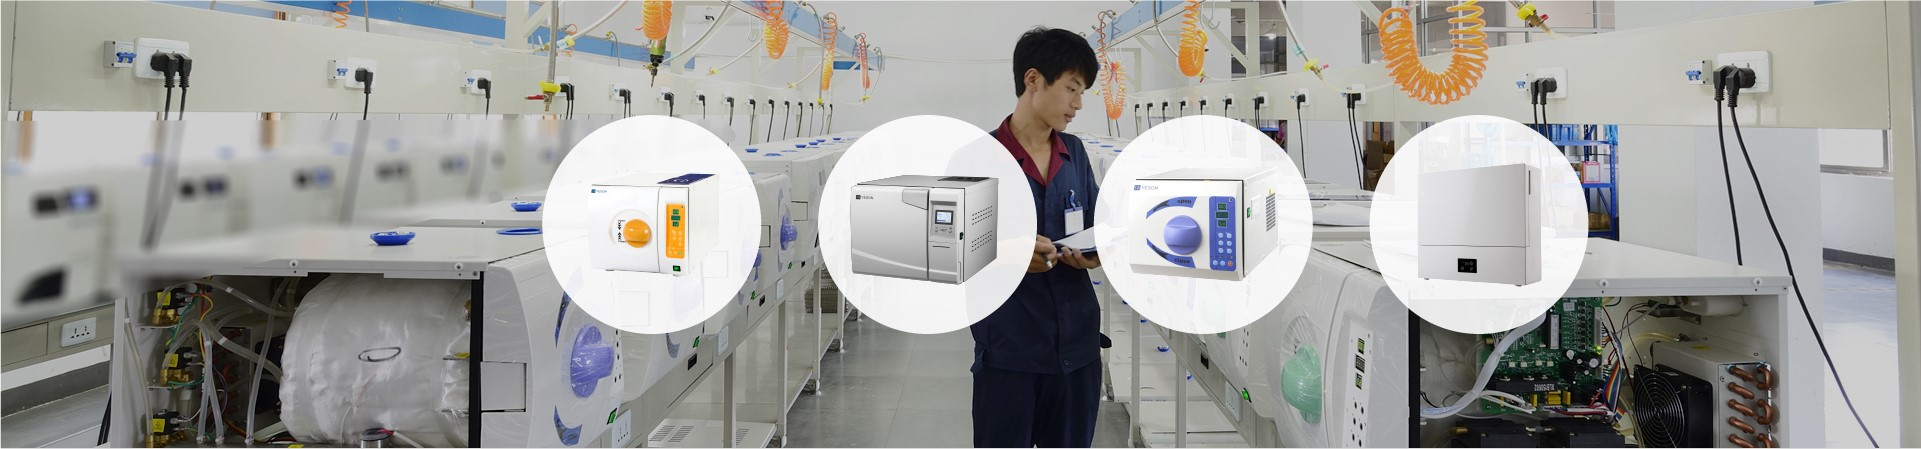 Dental Unit, China Water Purifier, Water Distiller Manufacturer | Yeson Medical